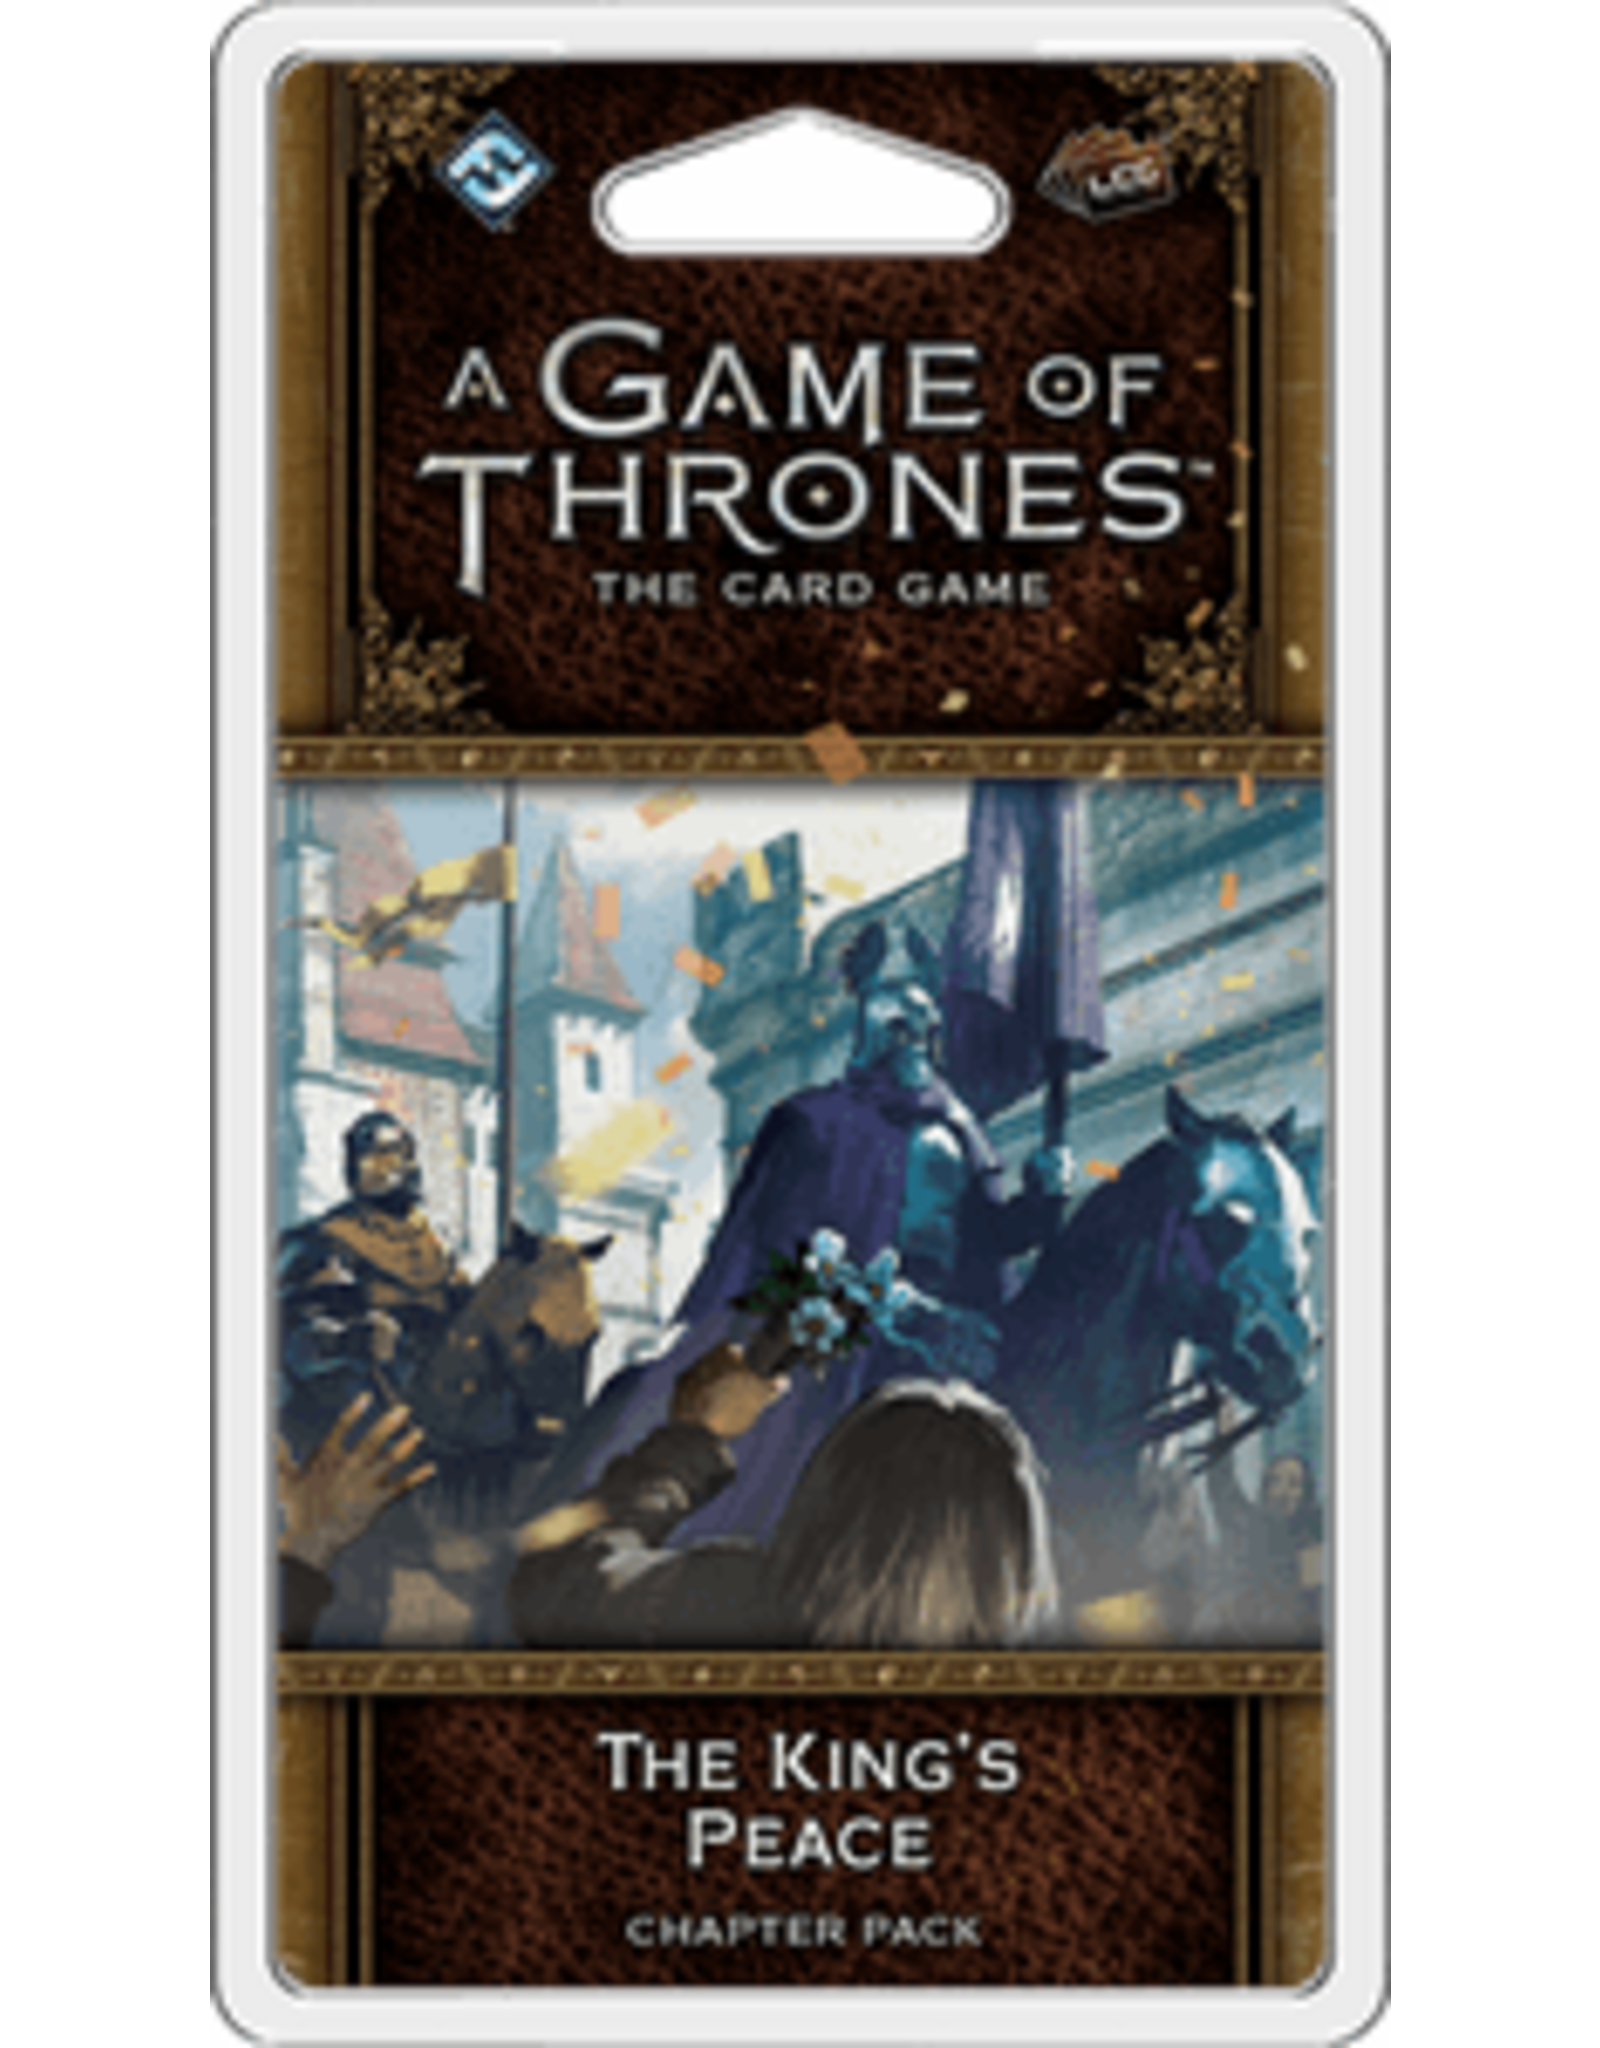 Game of Thrones LCG The King's Peace Chapter Pack